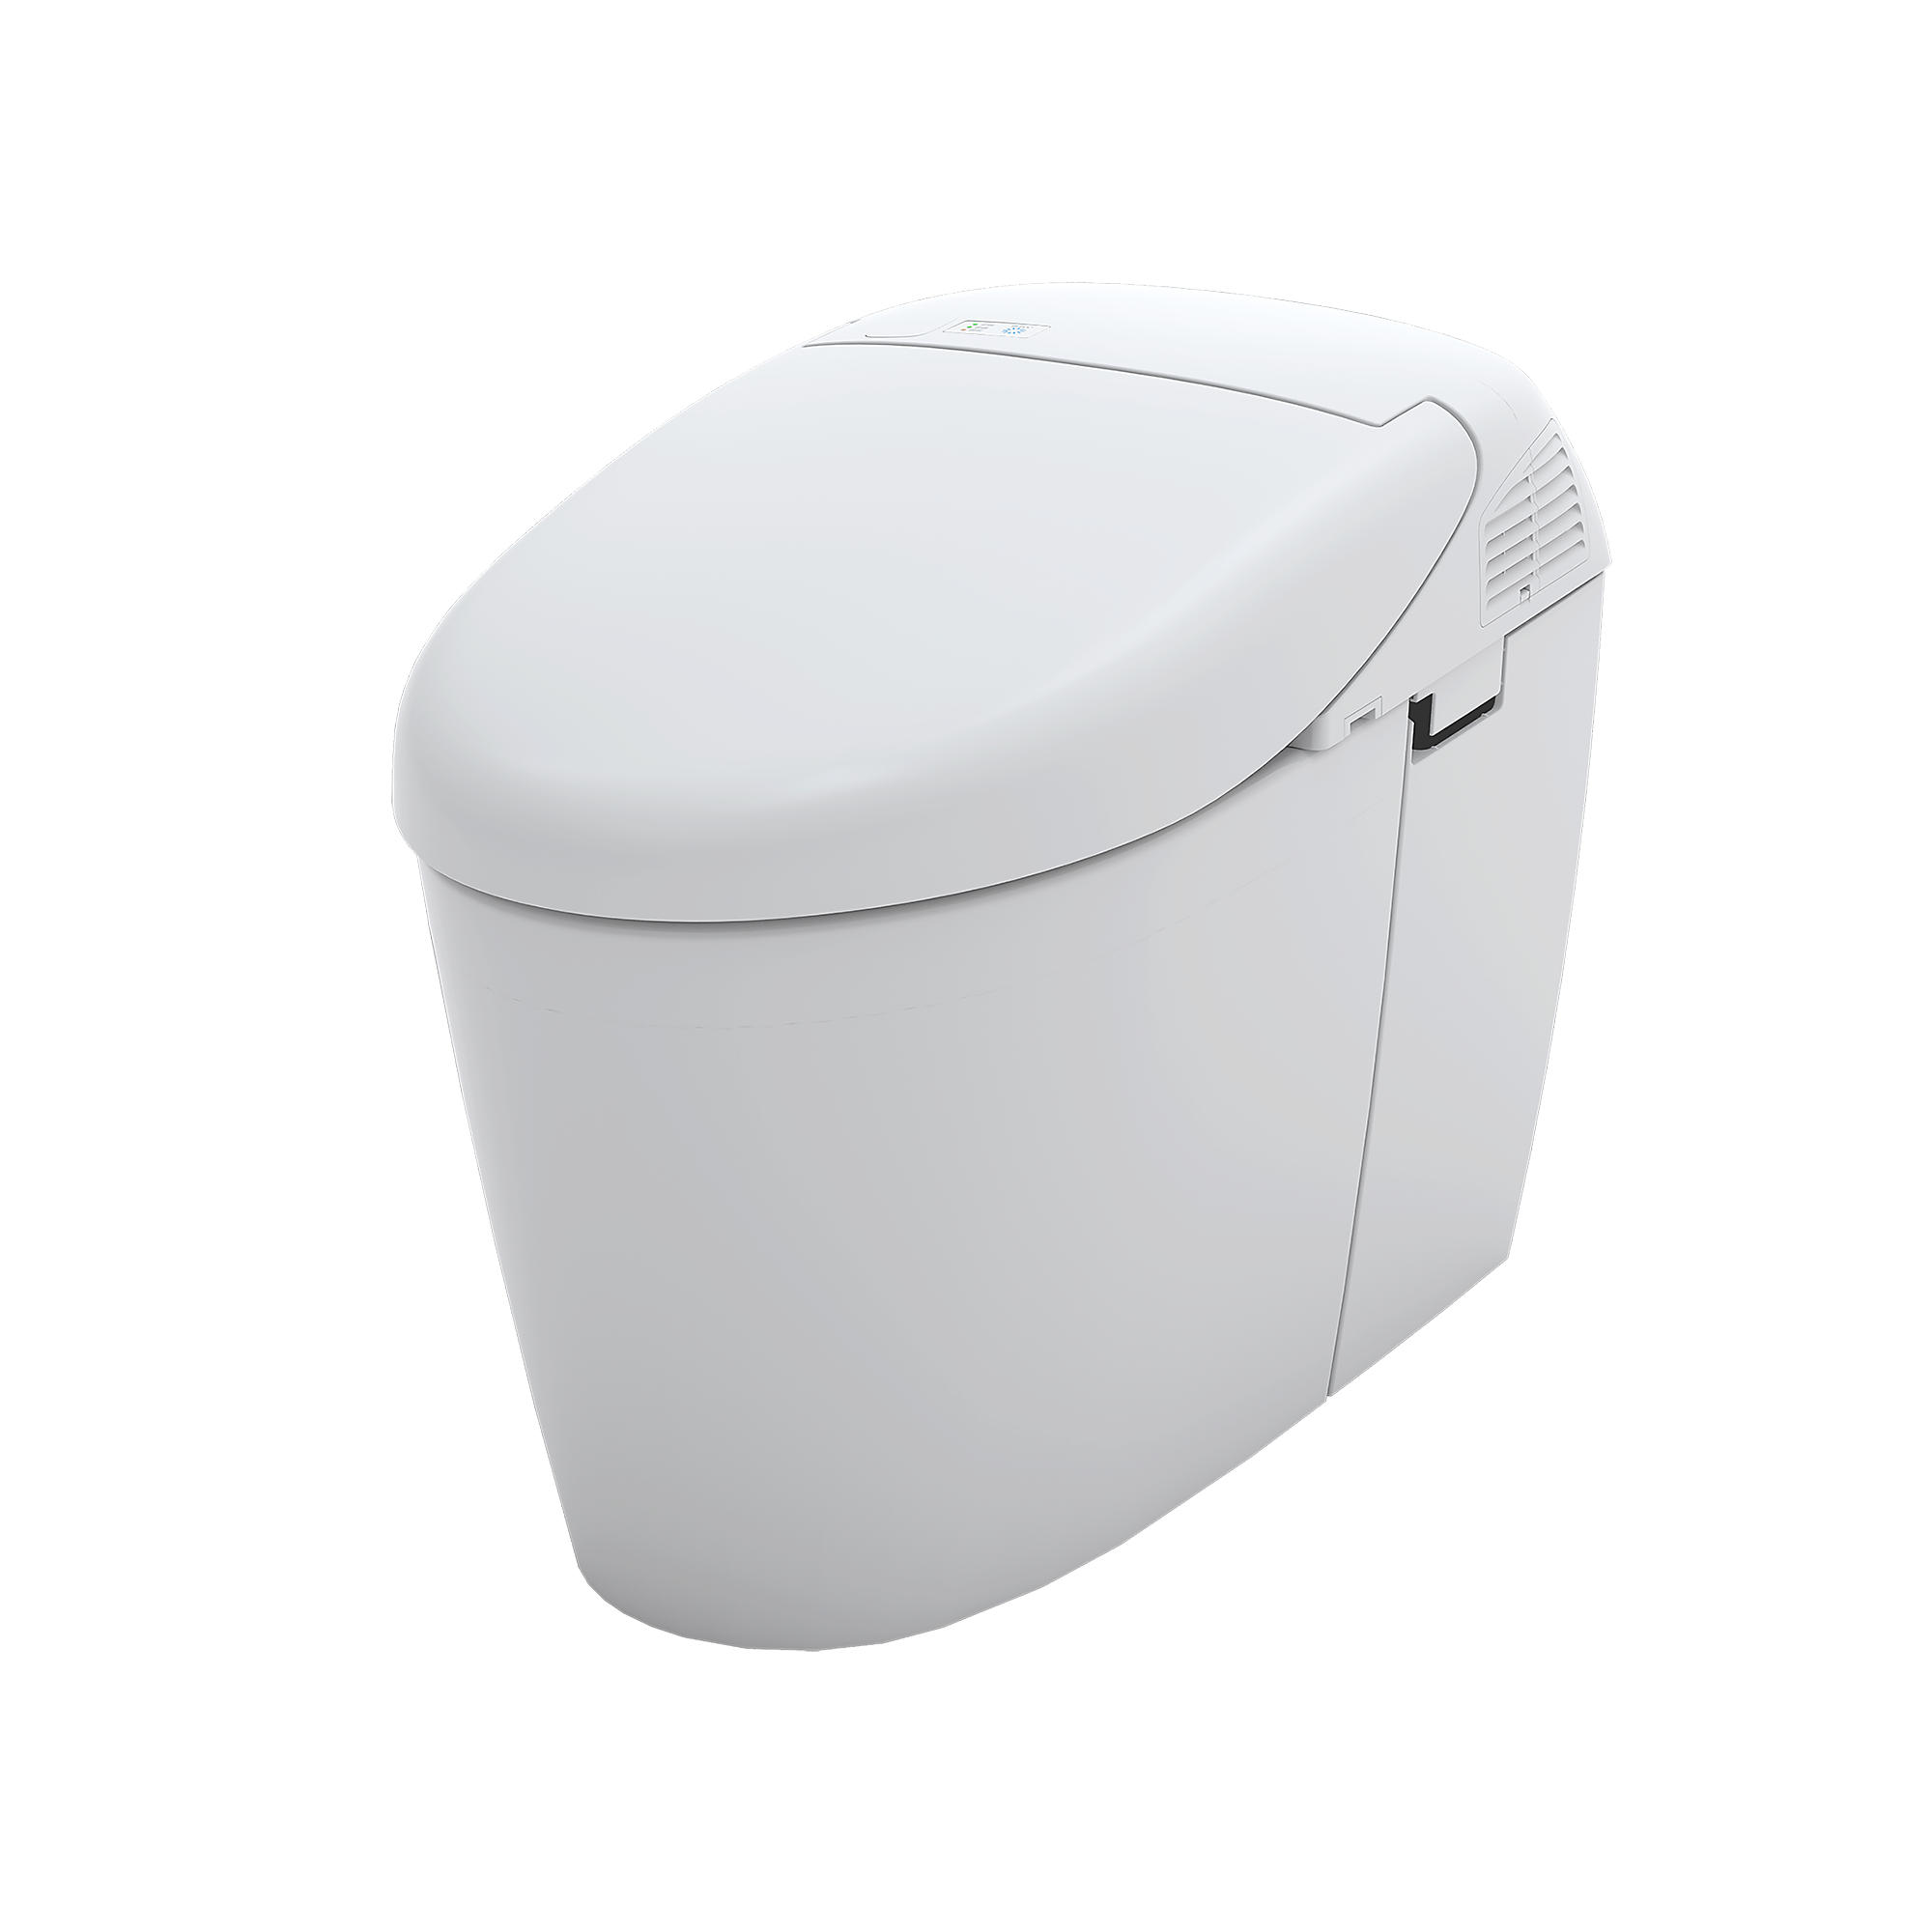 Ms952cumg 01 neorest  500h dual flush toilet  1 0 gpf   0 8 gpf 0